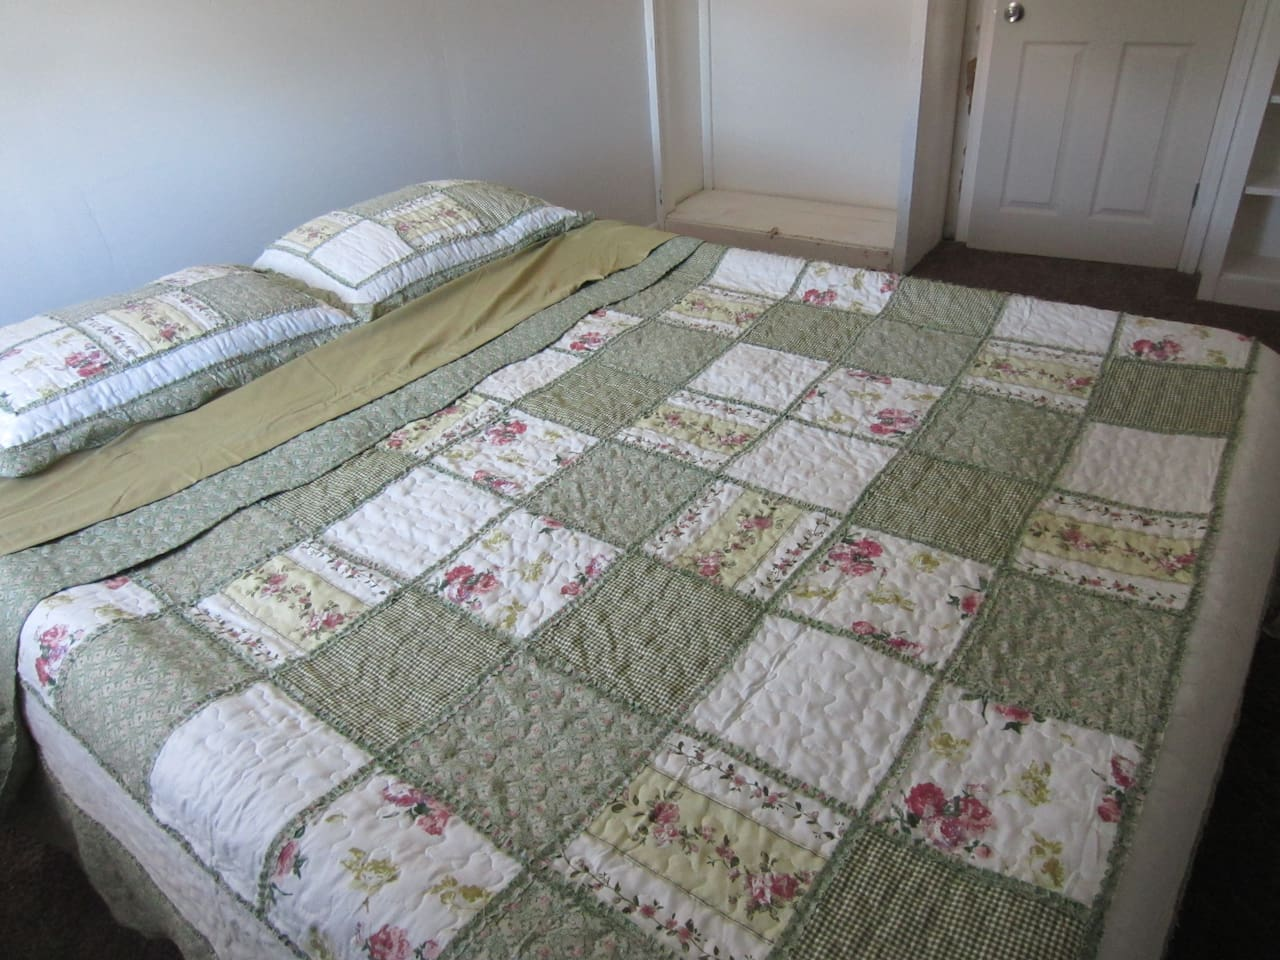 Air mattress in Upstairs Guest room 1